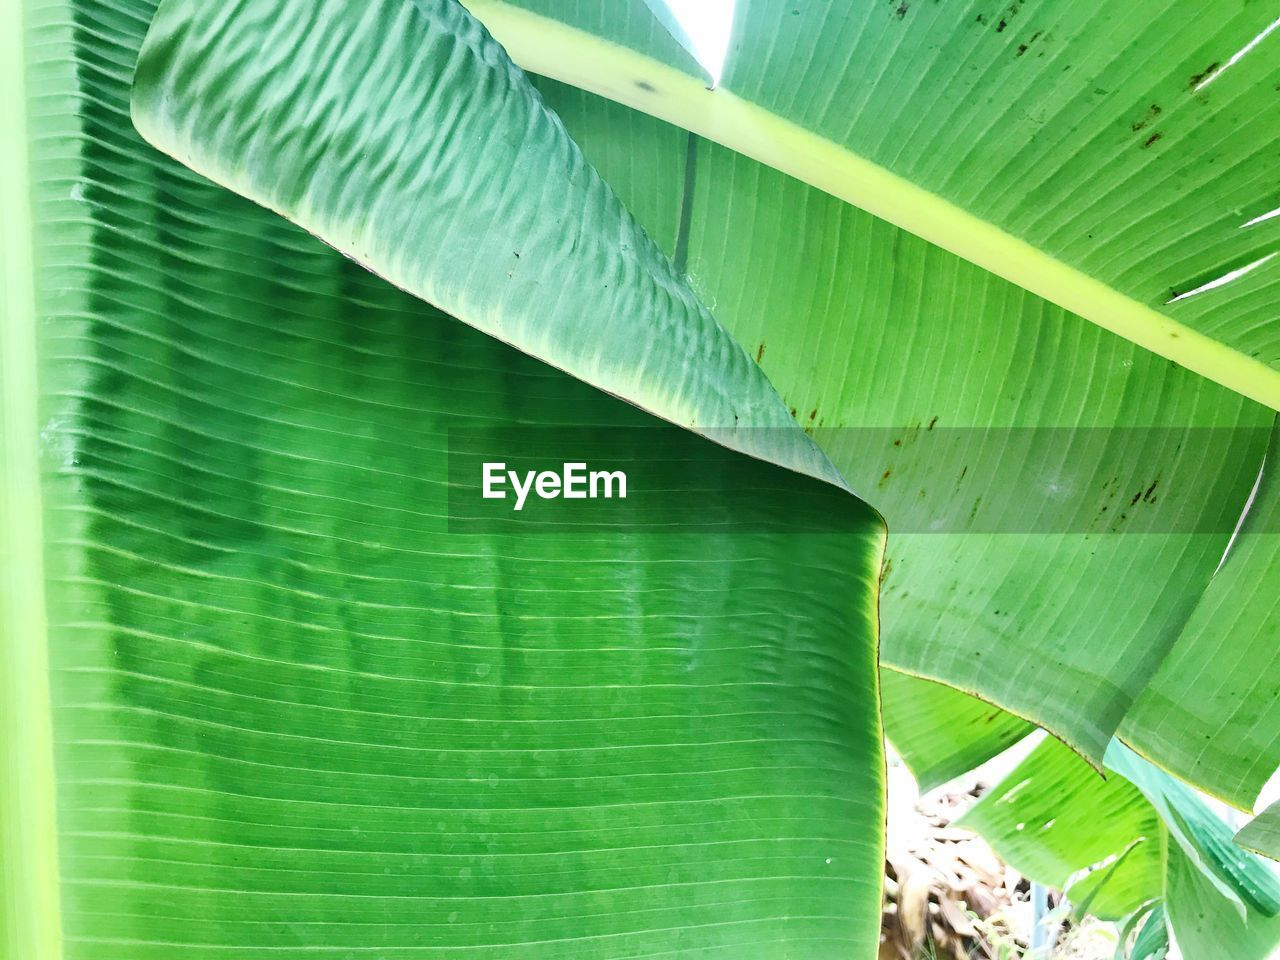 green color, leaf, plant part, plant, growth, close-up, no people, banana leaf, beauty in nature, nature, day, leaves, full frame, pattern, natural pattern, outdoors, banana tree, backgrounds, freshness, tree, palm leaf, bamboo - plant